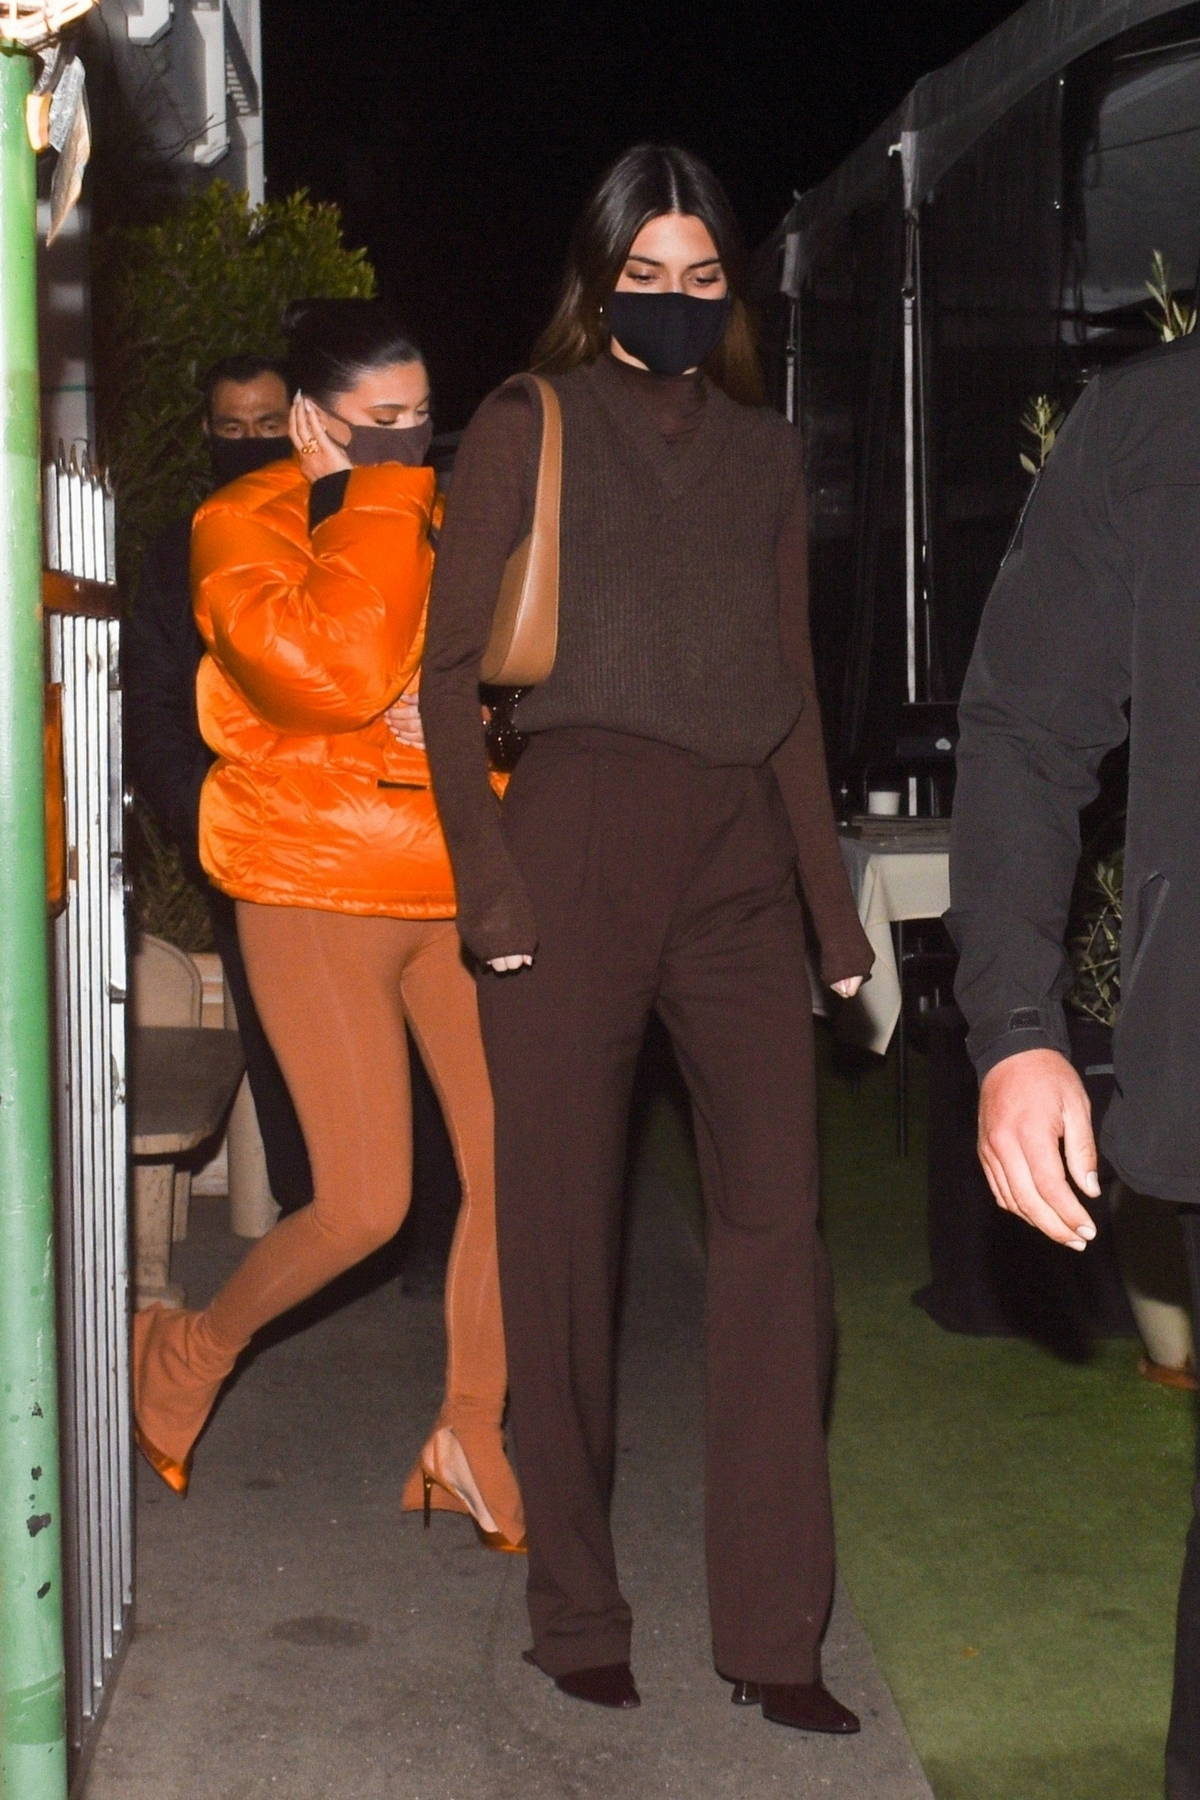 Kendall and Kylie Jenner step out for dinner at Giorgio Baldi in Santa Monica, California